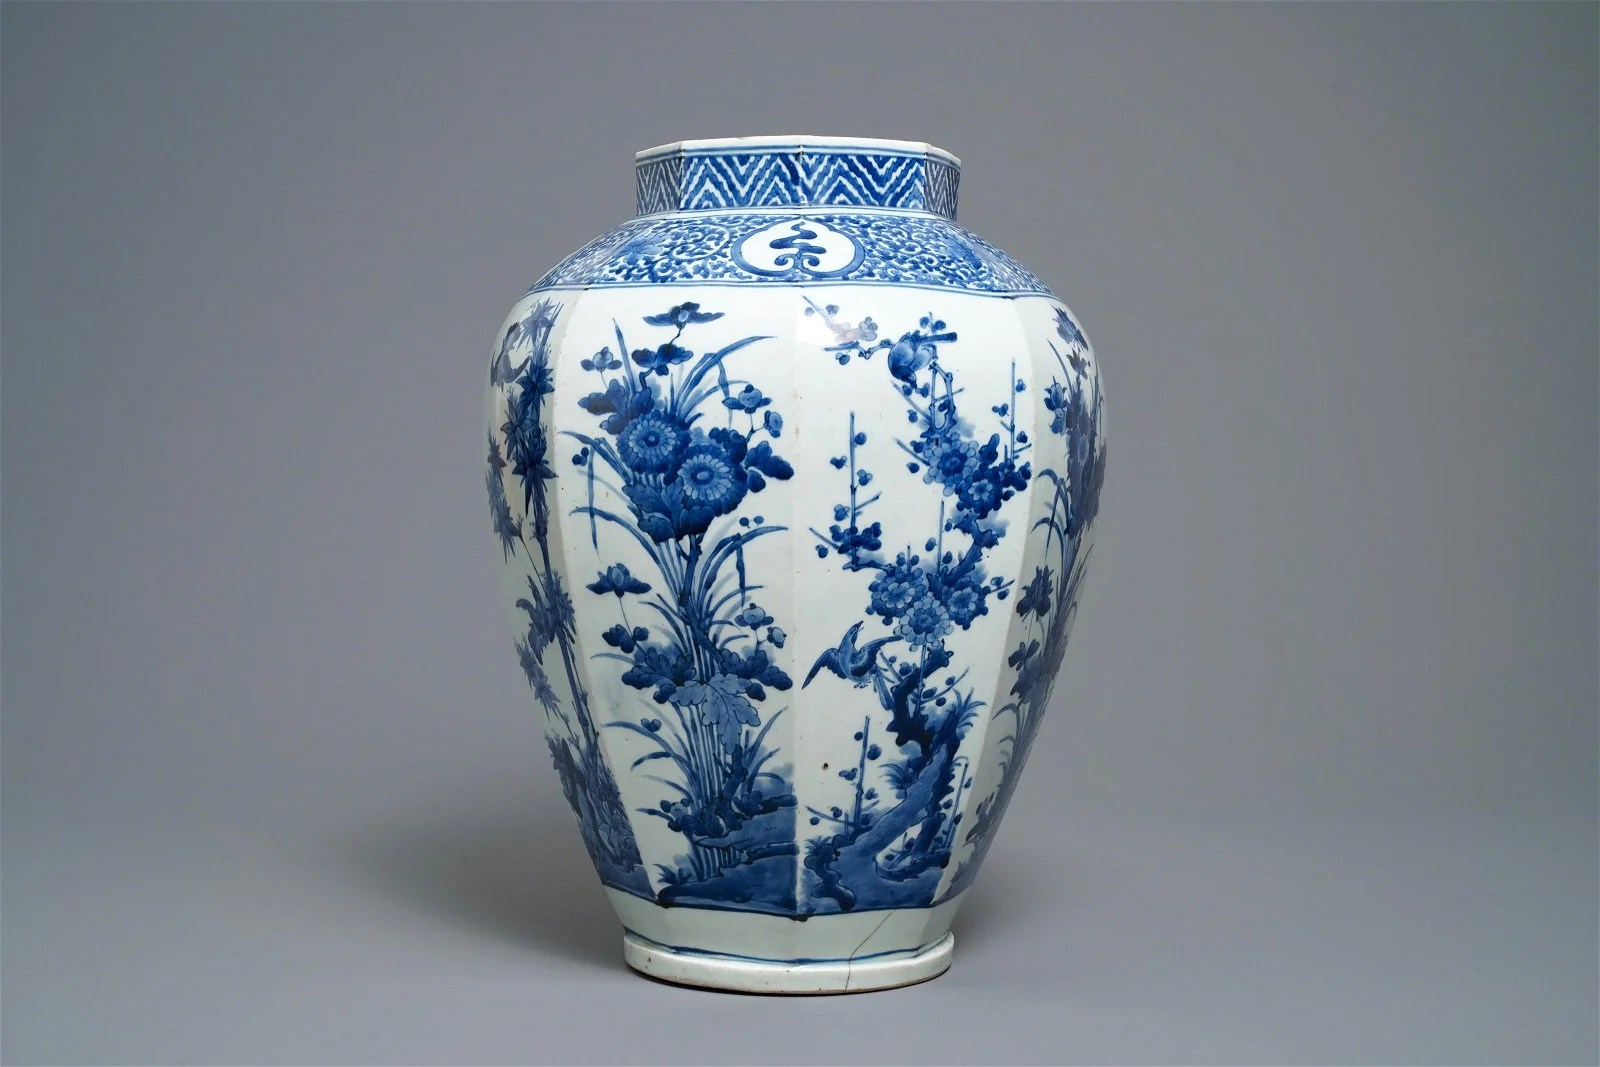 A Japanese blue and white octagonal Arita vase with